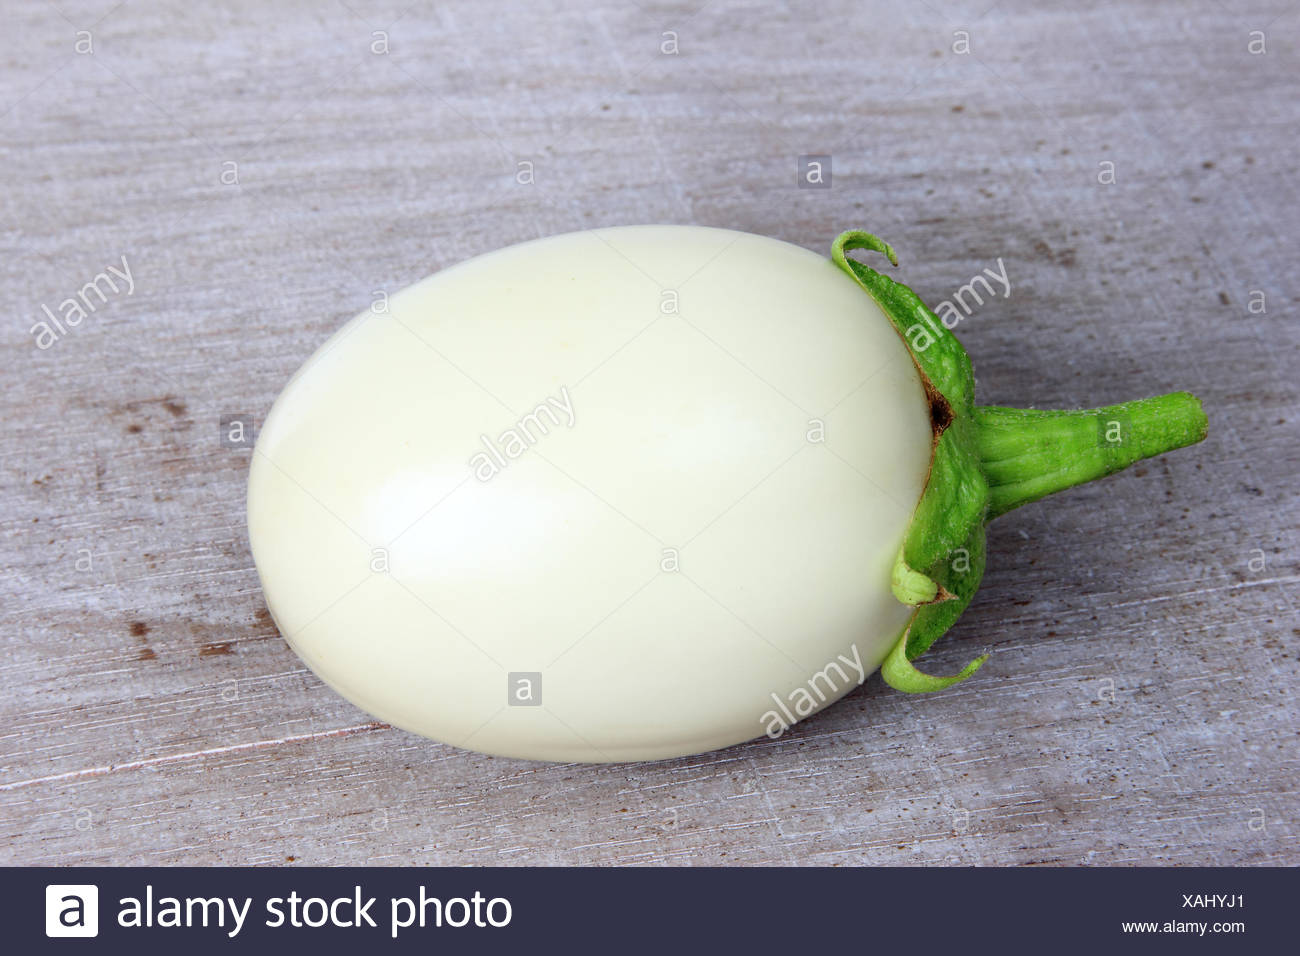 White eggplant (Solanum melongena) Stock Photo